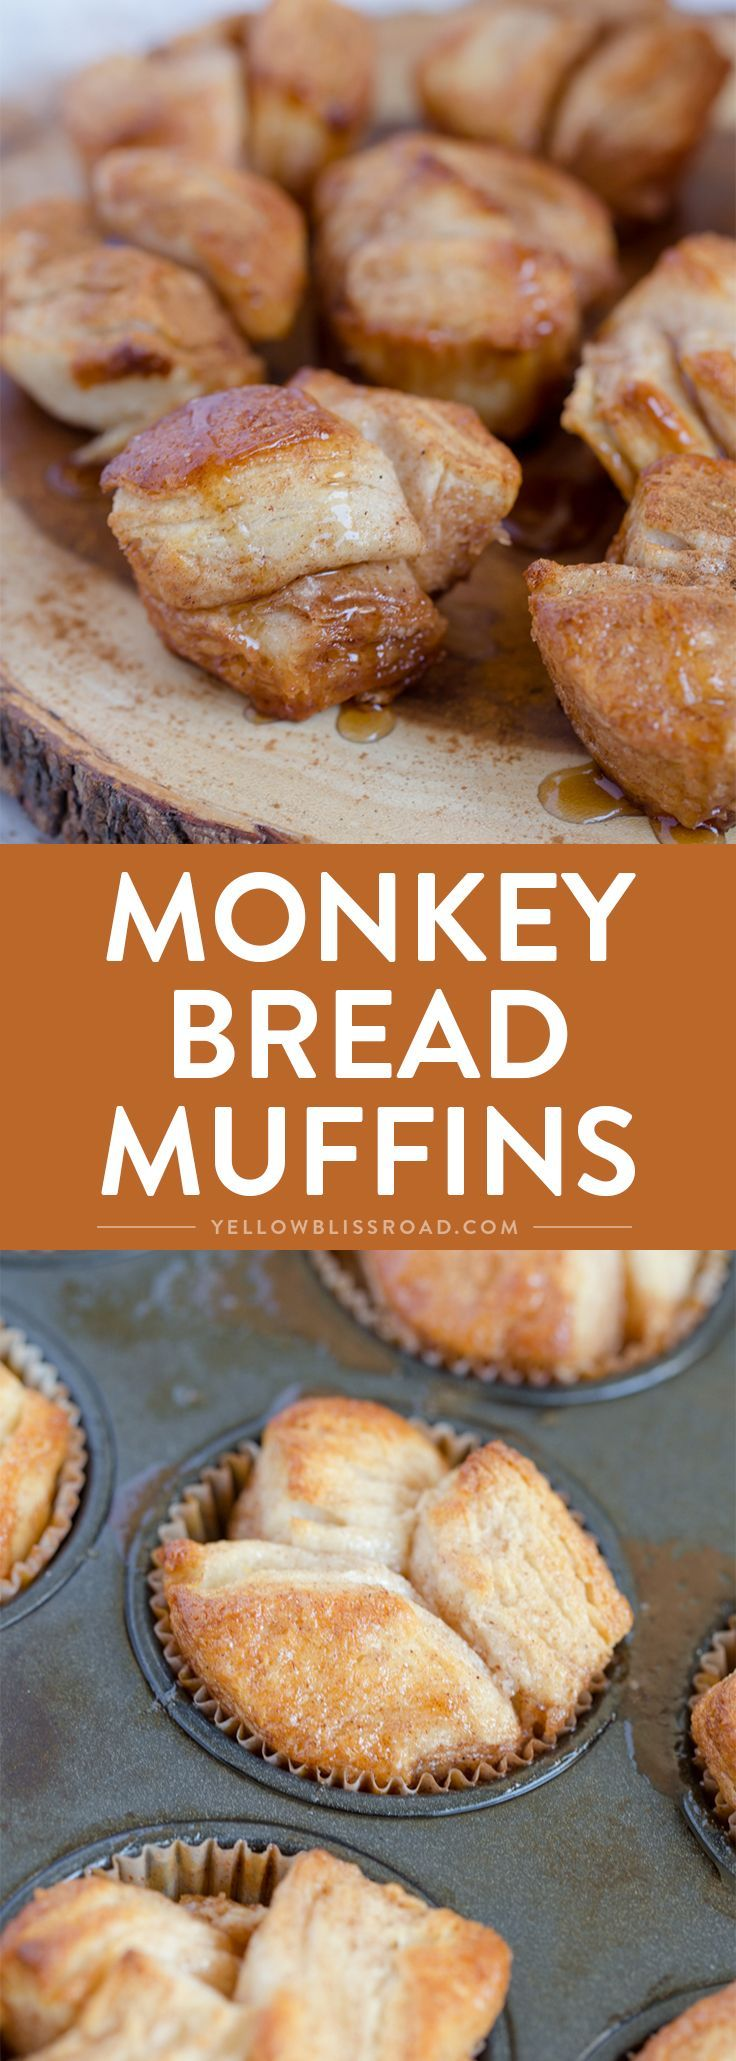 Monkey Bread Muffins | Recipe | Monkey bread muffins ...